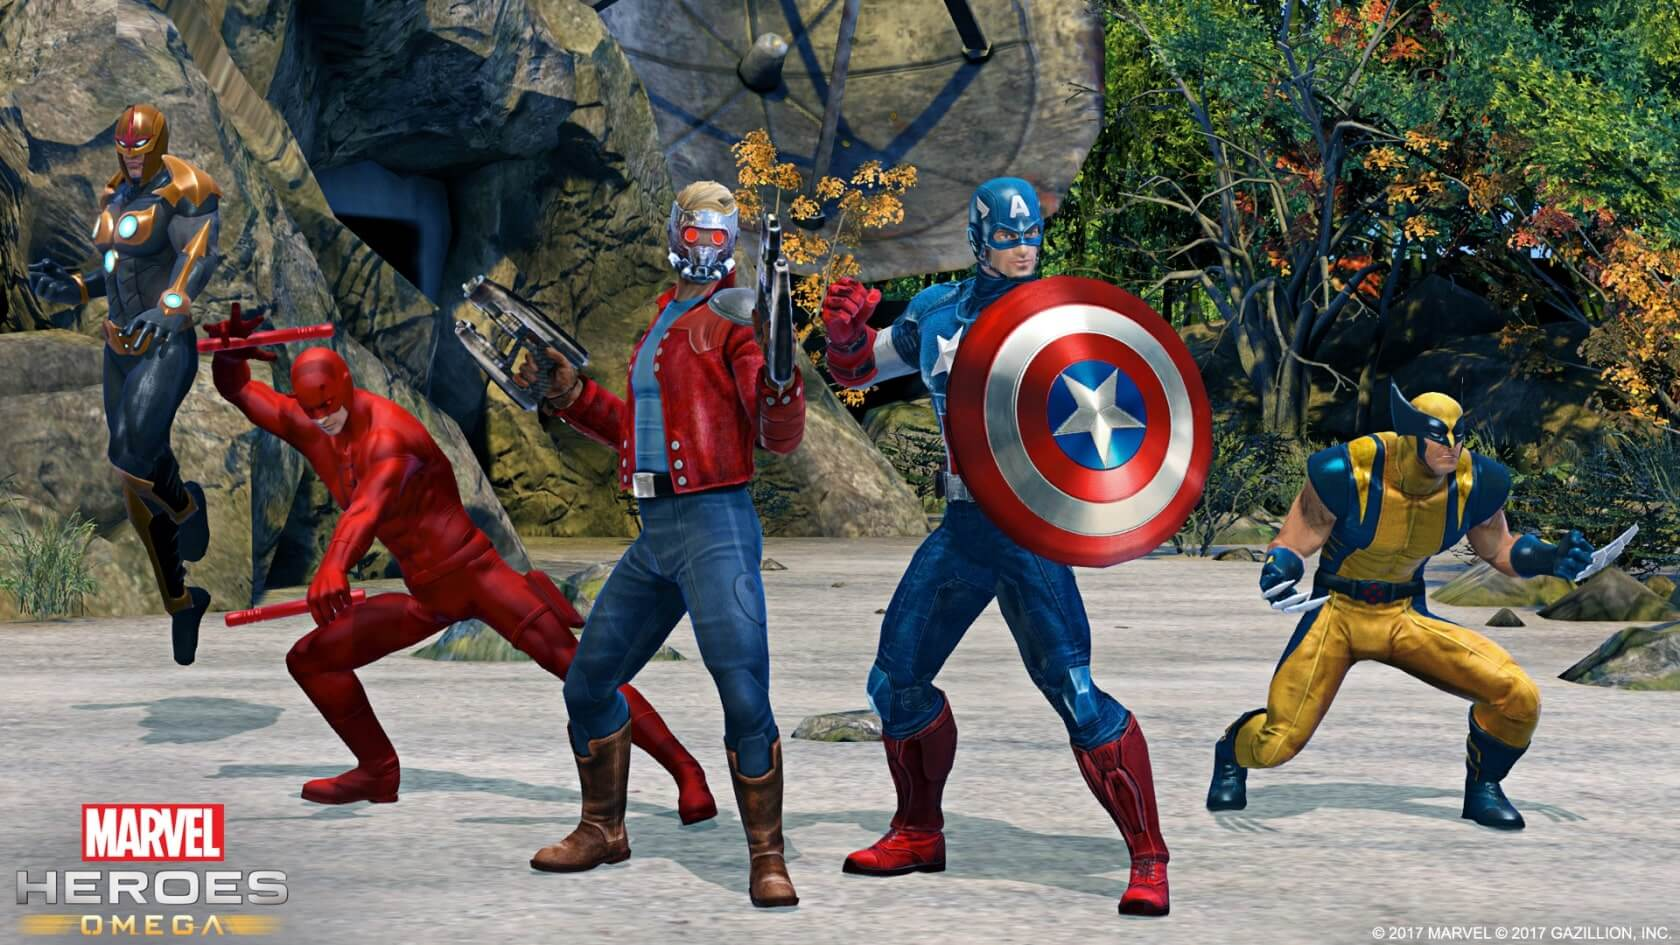 Free-to-play MMO Marvel Heroes is being shut down